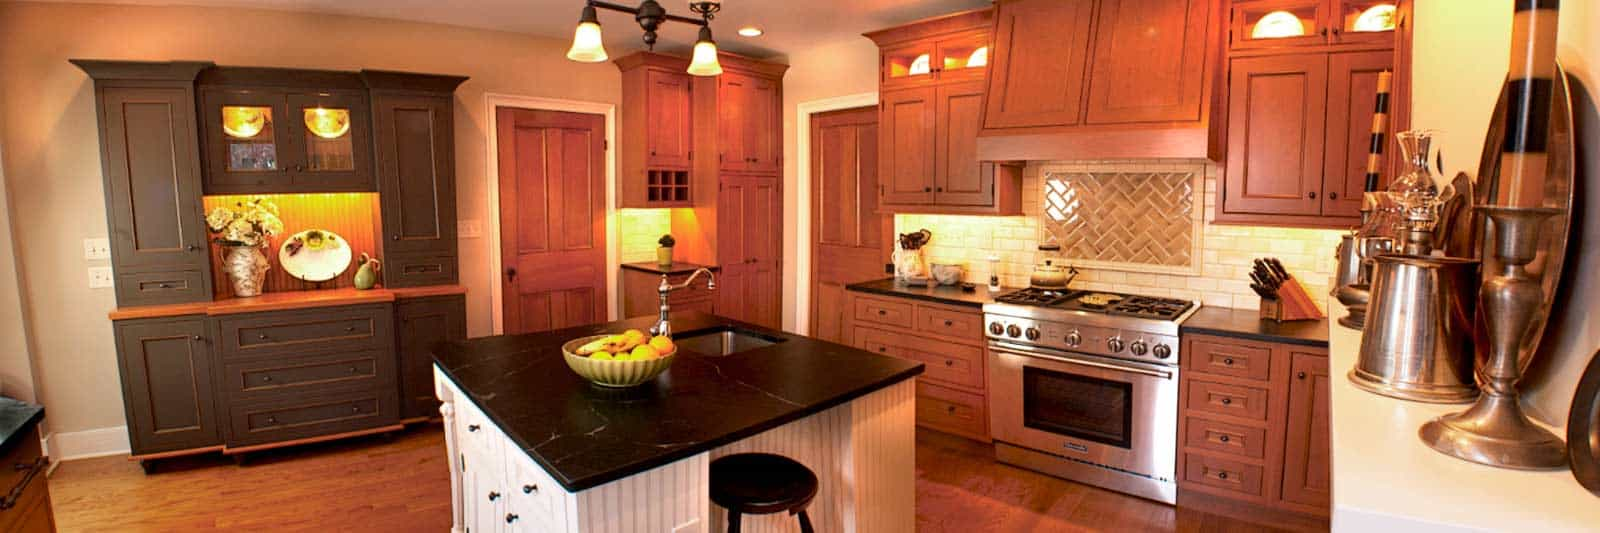 kitchens Lawrenceville nj